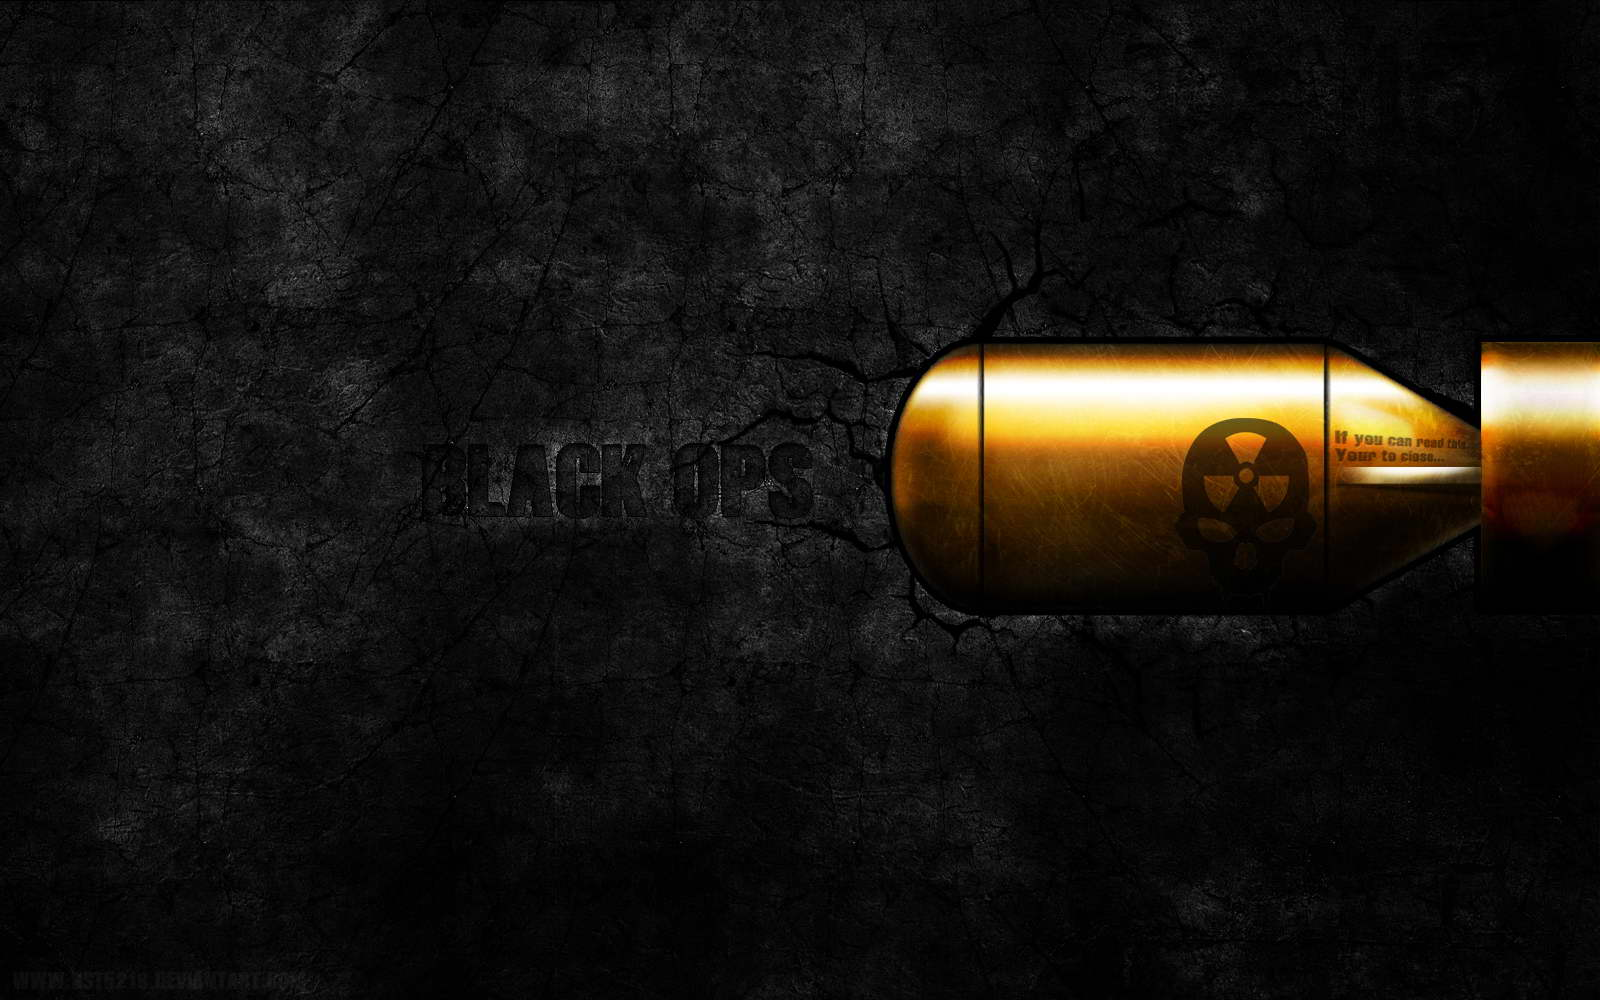 Call Of Duty Black Ops 2 Wallpapers 2605 1920x1080 px